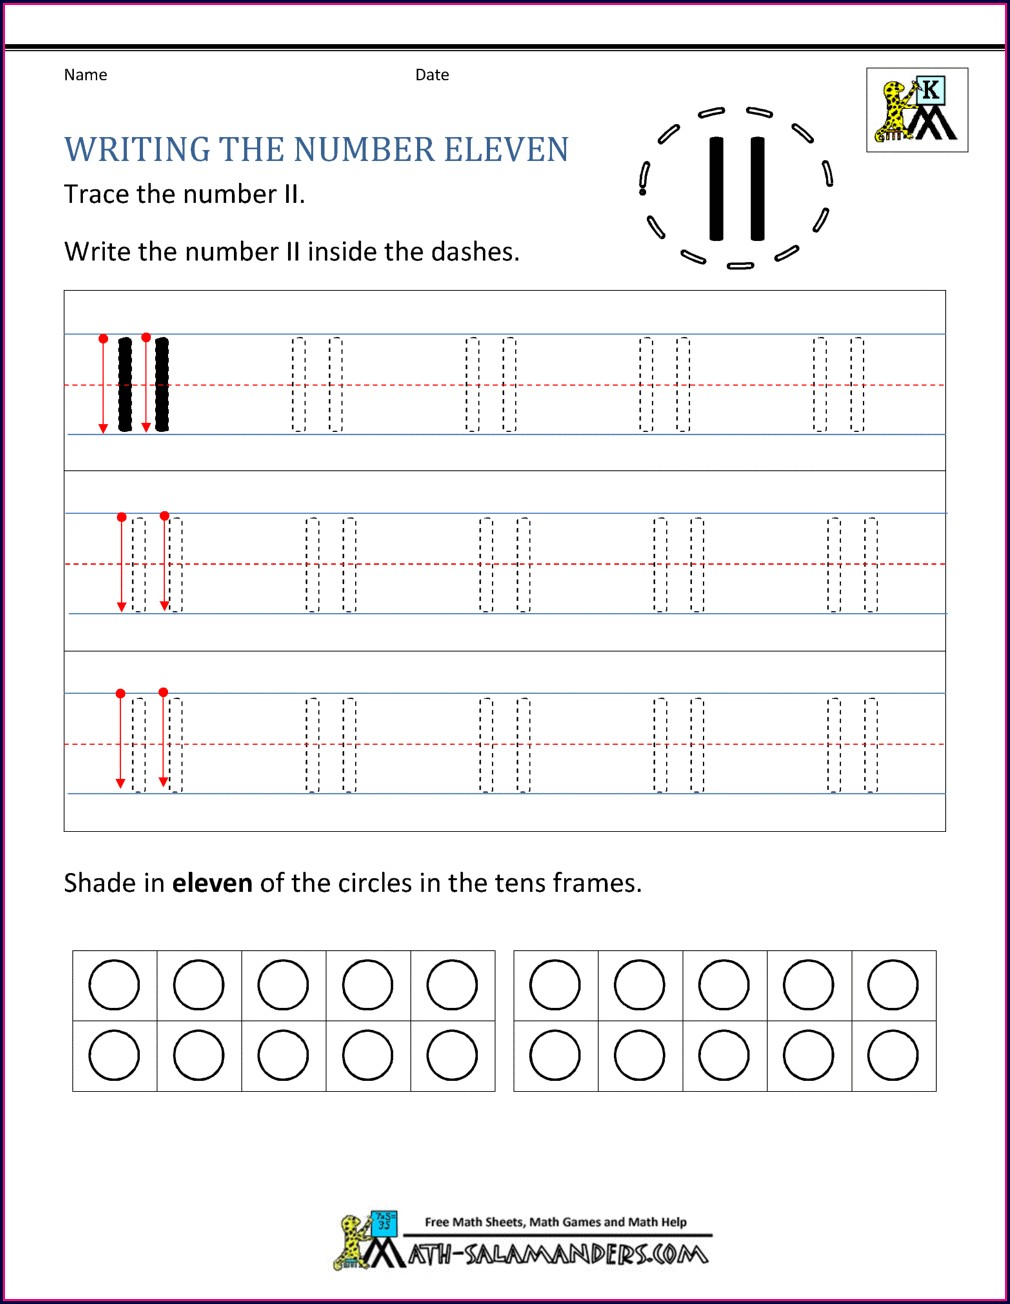 Kindergarten Number Tracing Worksheets 11 20